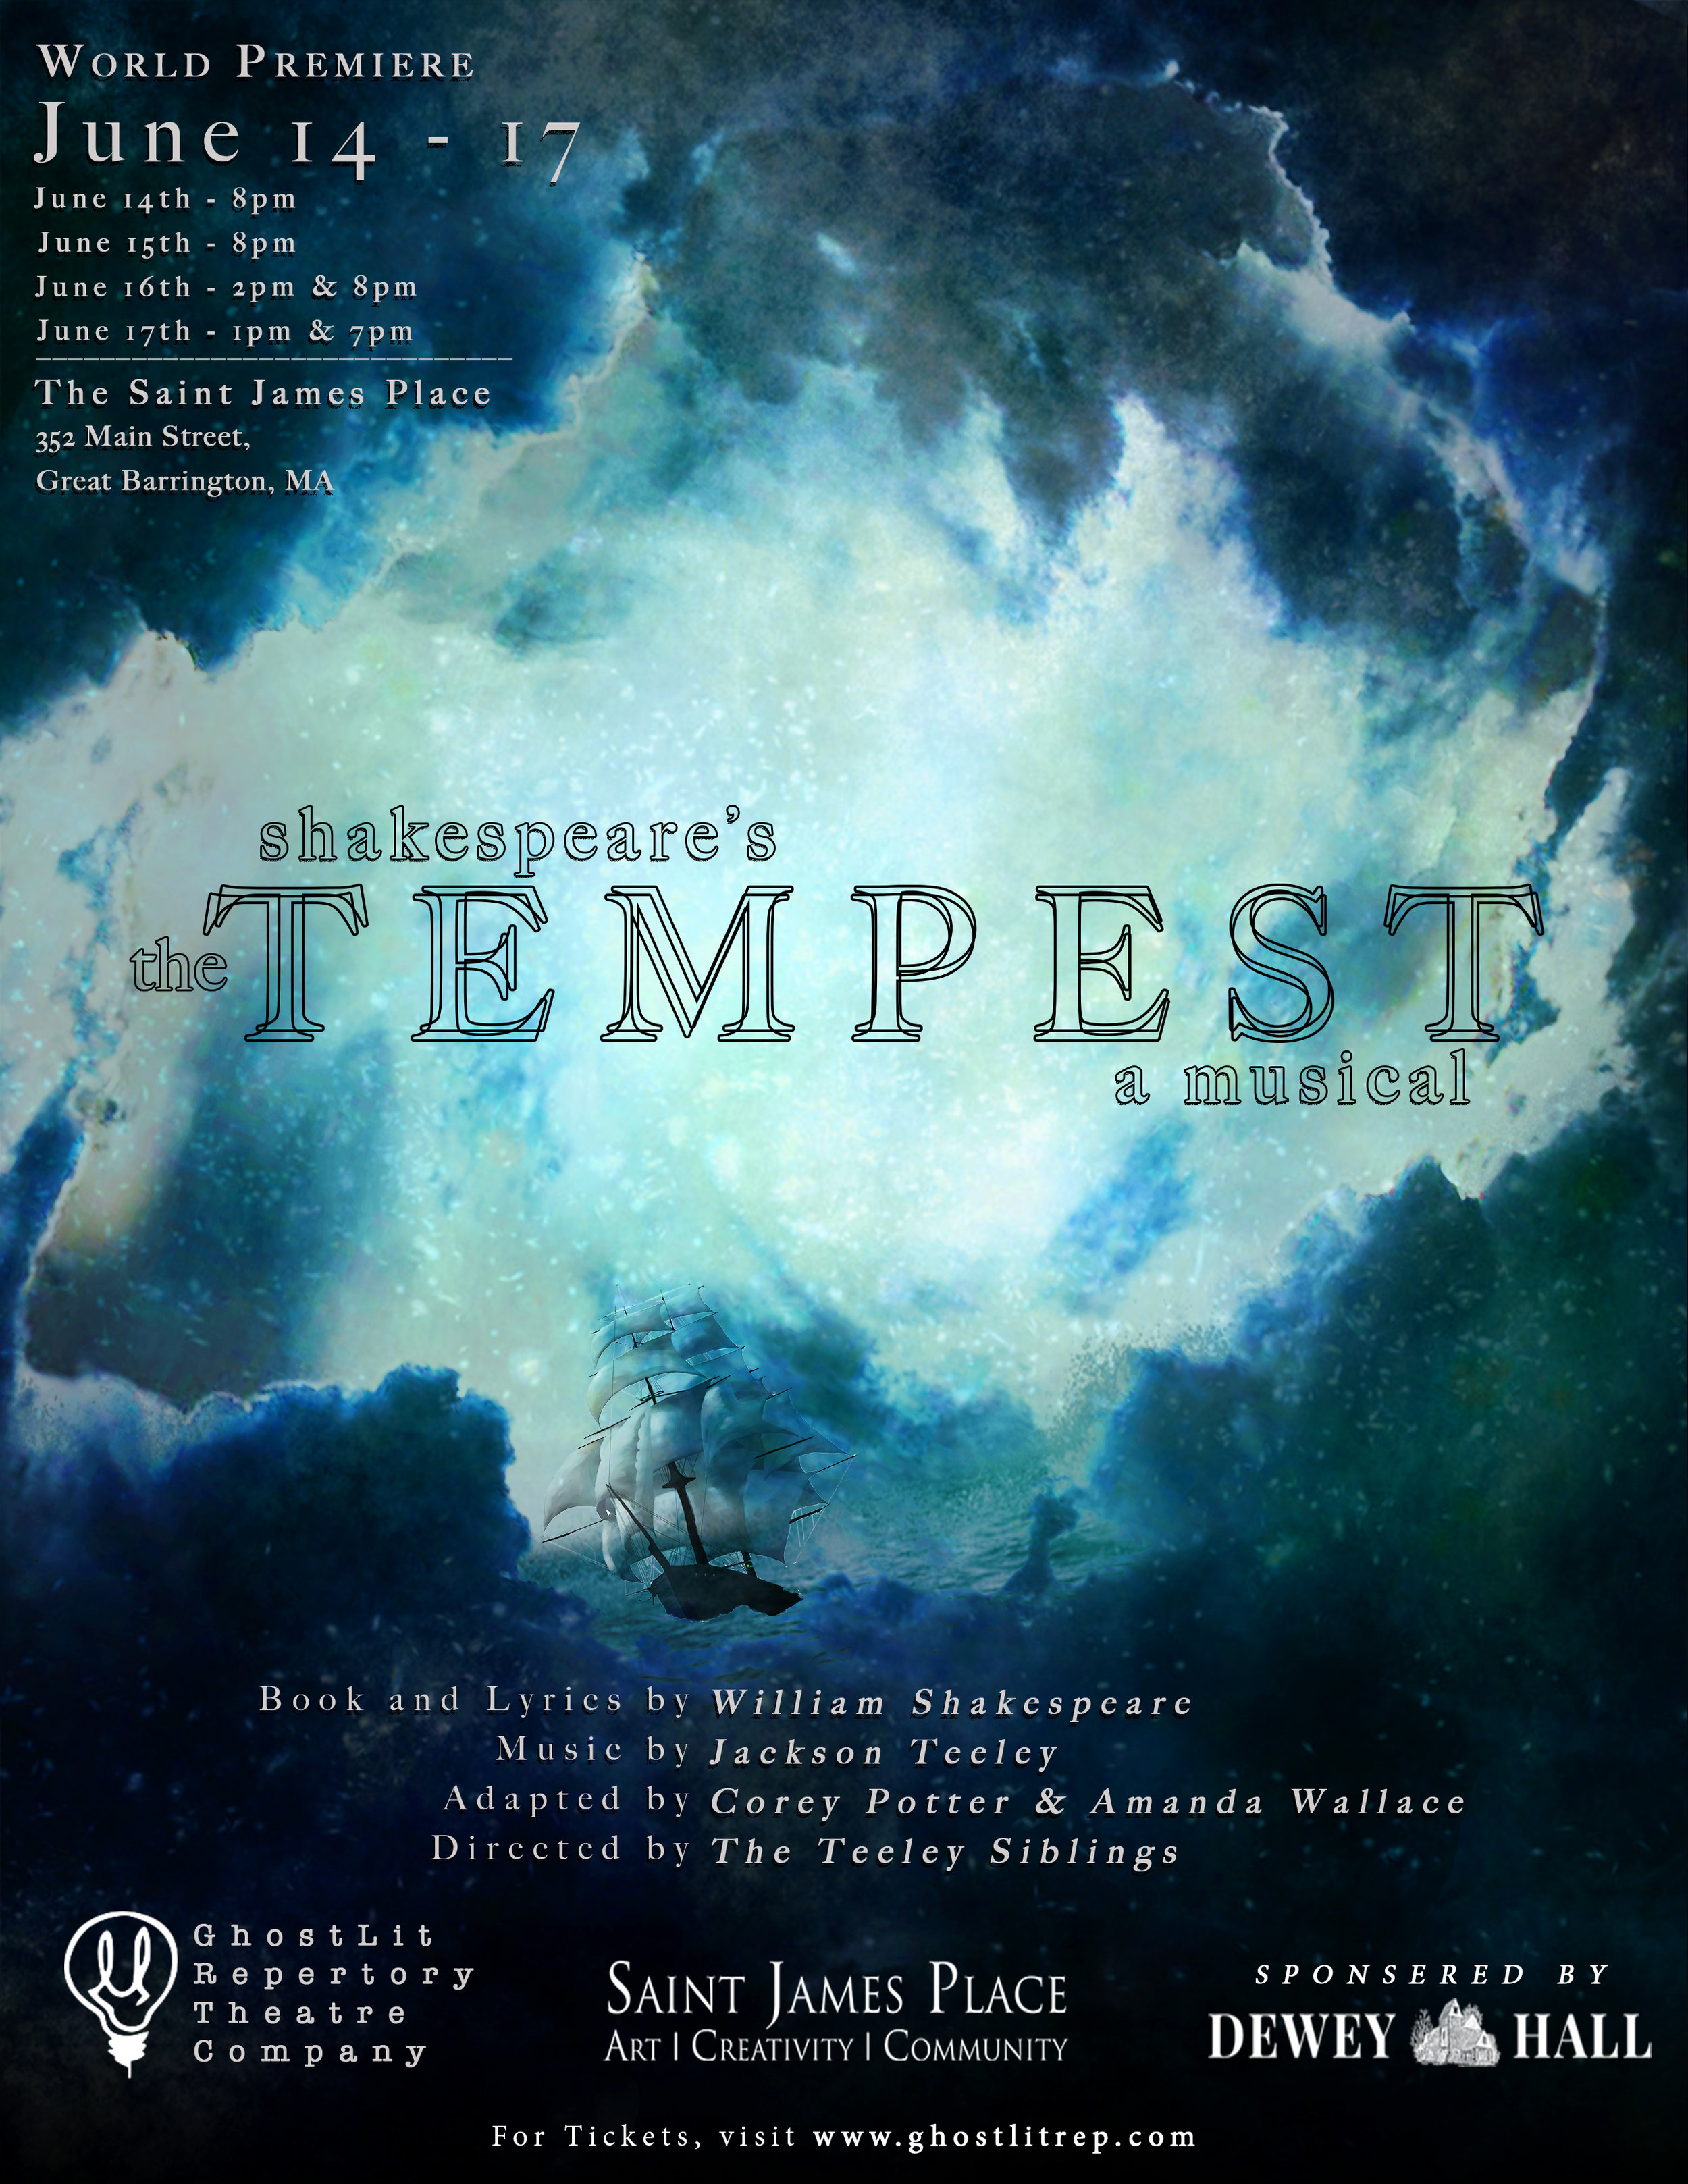 The Tempest: A Musical - June 14-17 2018St. James Place, Great Barrington, MA, 01230 United StatesThis original adaptation had its world-premiere workshop in spring, 2016 at Emerson College and will now see it's fully staged world premiere at St. James Place in Great Barrington.Originally adapted by Corey G Potter, Amanda Rose Wallace, and Jackson Teeley. Directed by Caitlin and Jackson TeeleyMusic Direction by Jackson TeeleyCASTProspero- Jolyn UnruhMiranda- Brianna NicolaAriel- Caroline FairweatherCaliban- Ali Louis BourzguiFerdinand- Aiden ChalfonteAlonso- Dana M. HarrisonAntonio- David BertoldiSebastian- Connor McNinchGonzala- Olivia WillcoxTrinculo- Harrison LangStephano- Cody Lee MillerEnsemble- Alexandra Keane, Taylor Slonaker, Austin Lombardi and Charles Kerzner